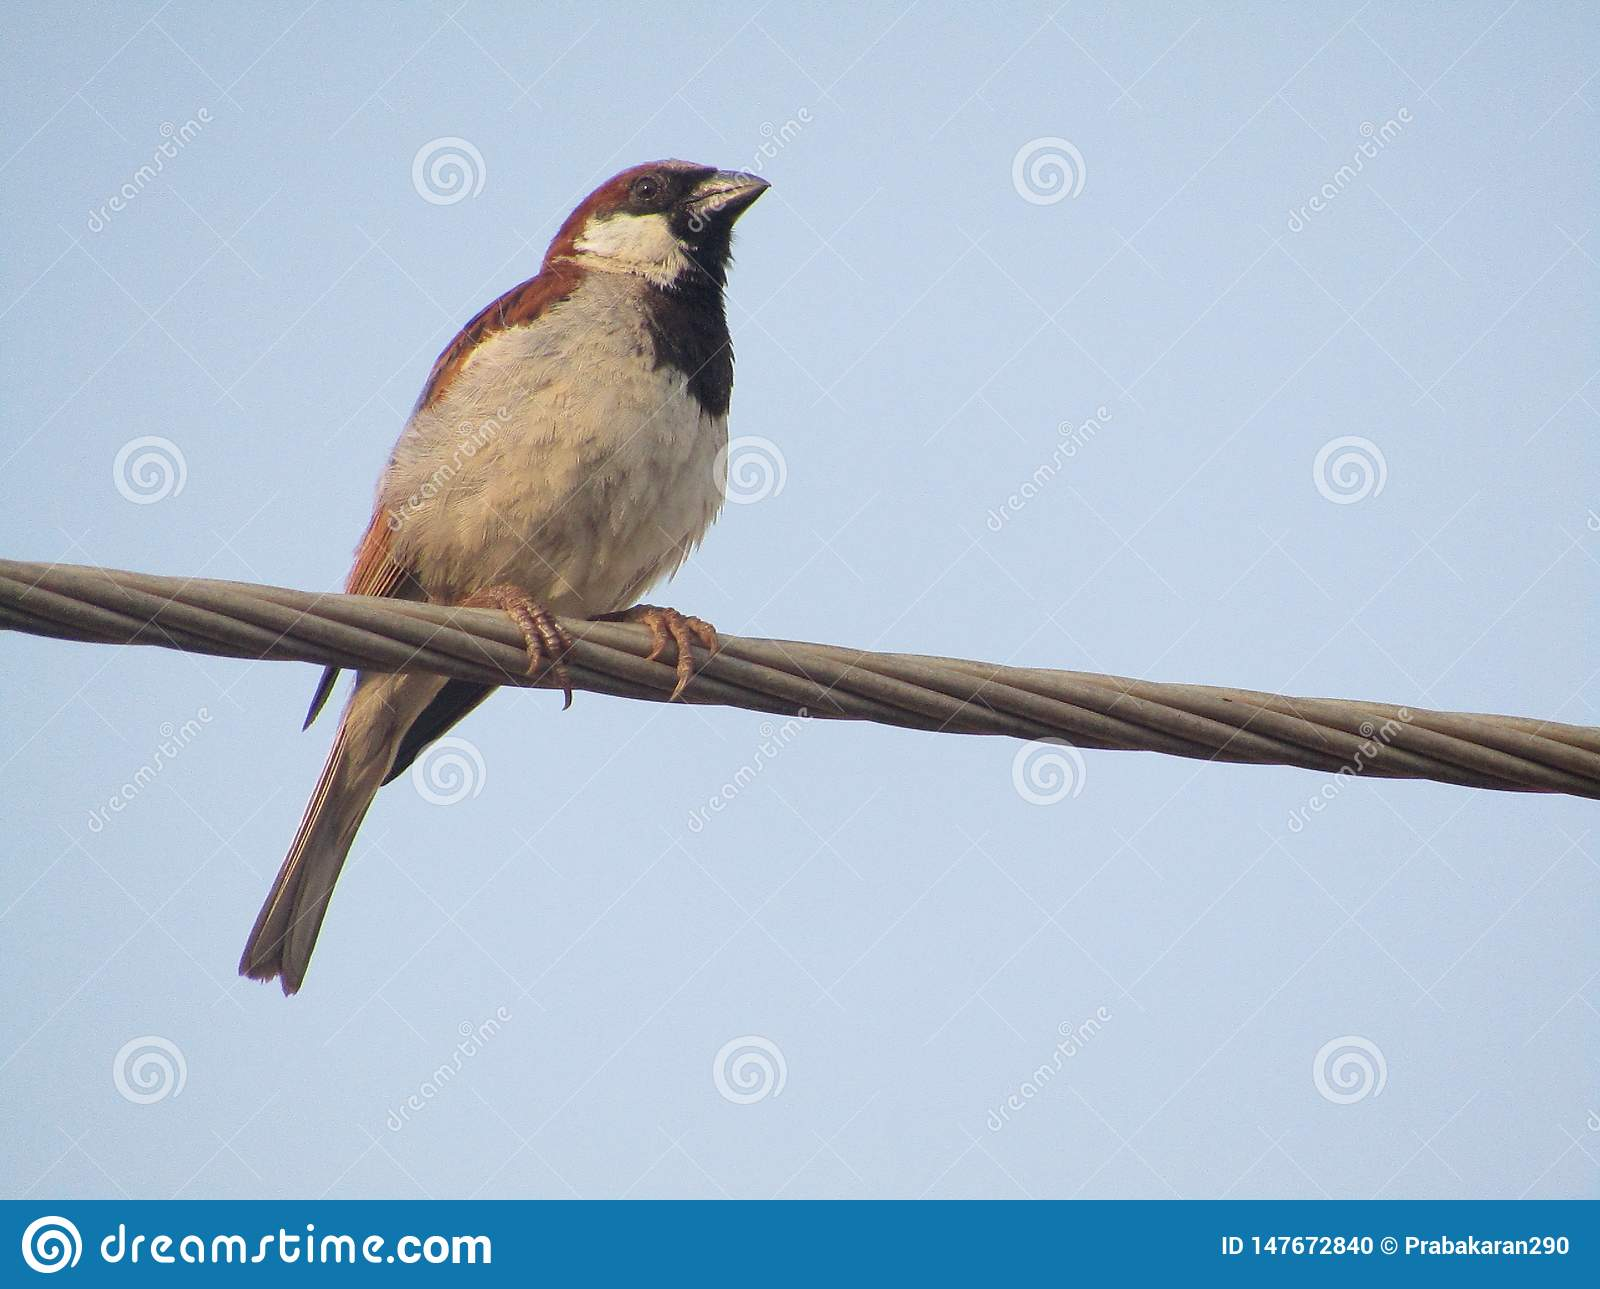 Sparrow standing on power line